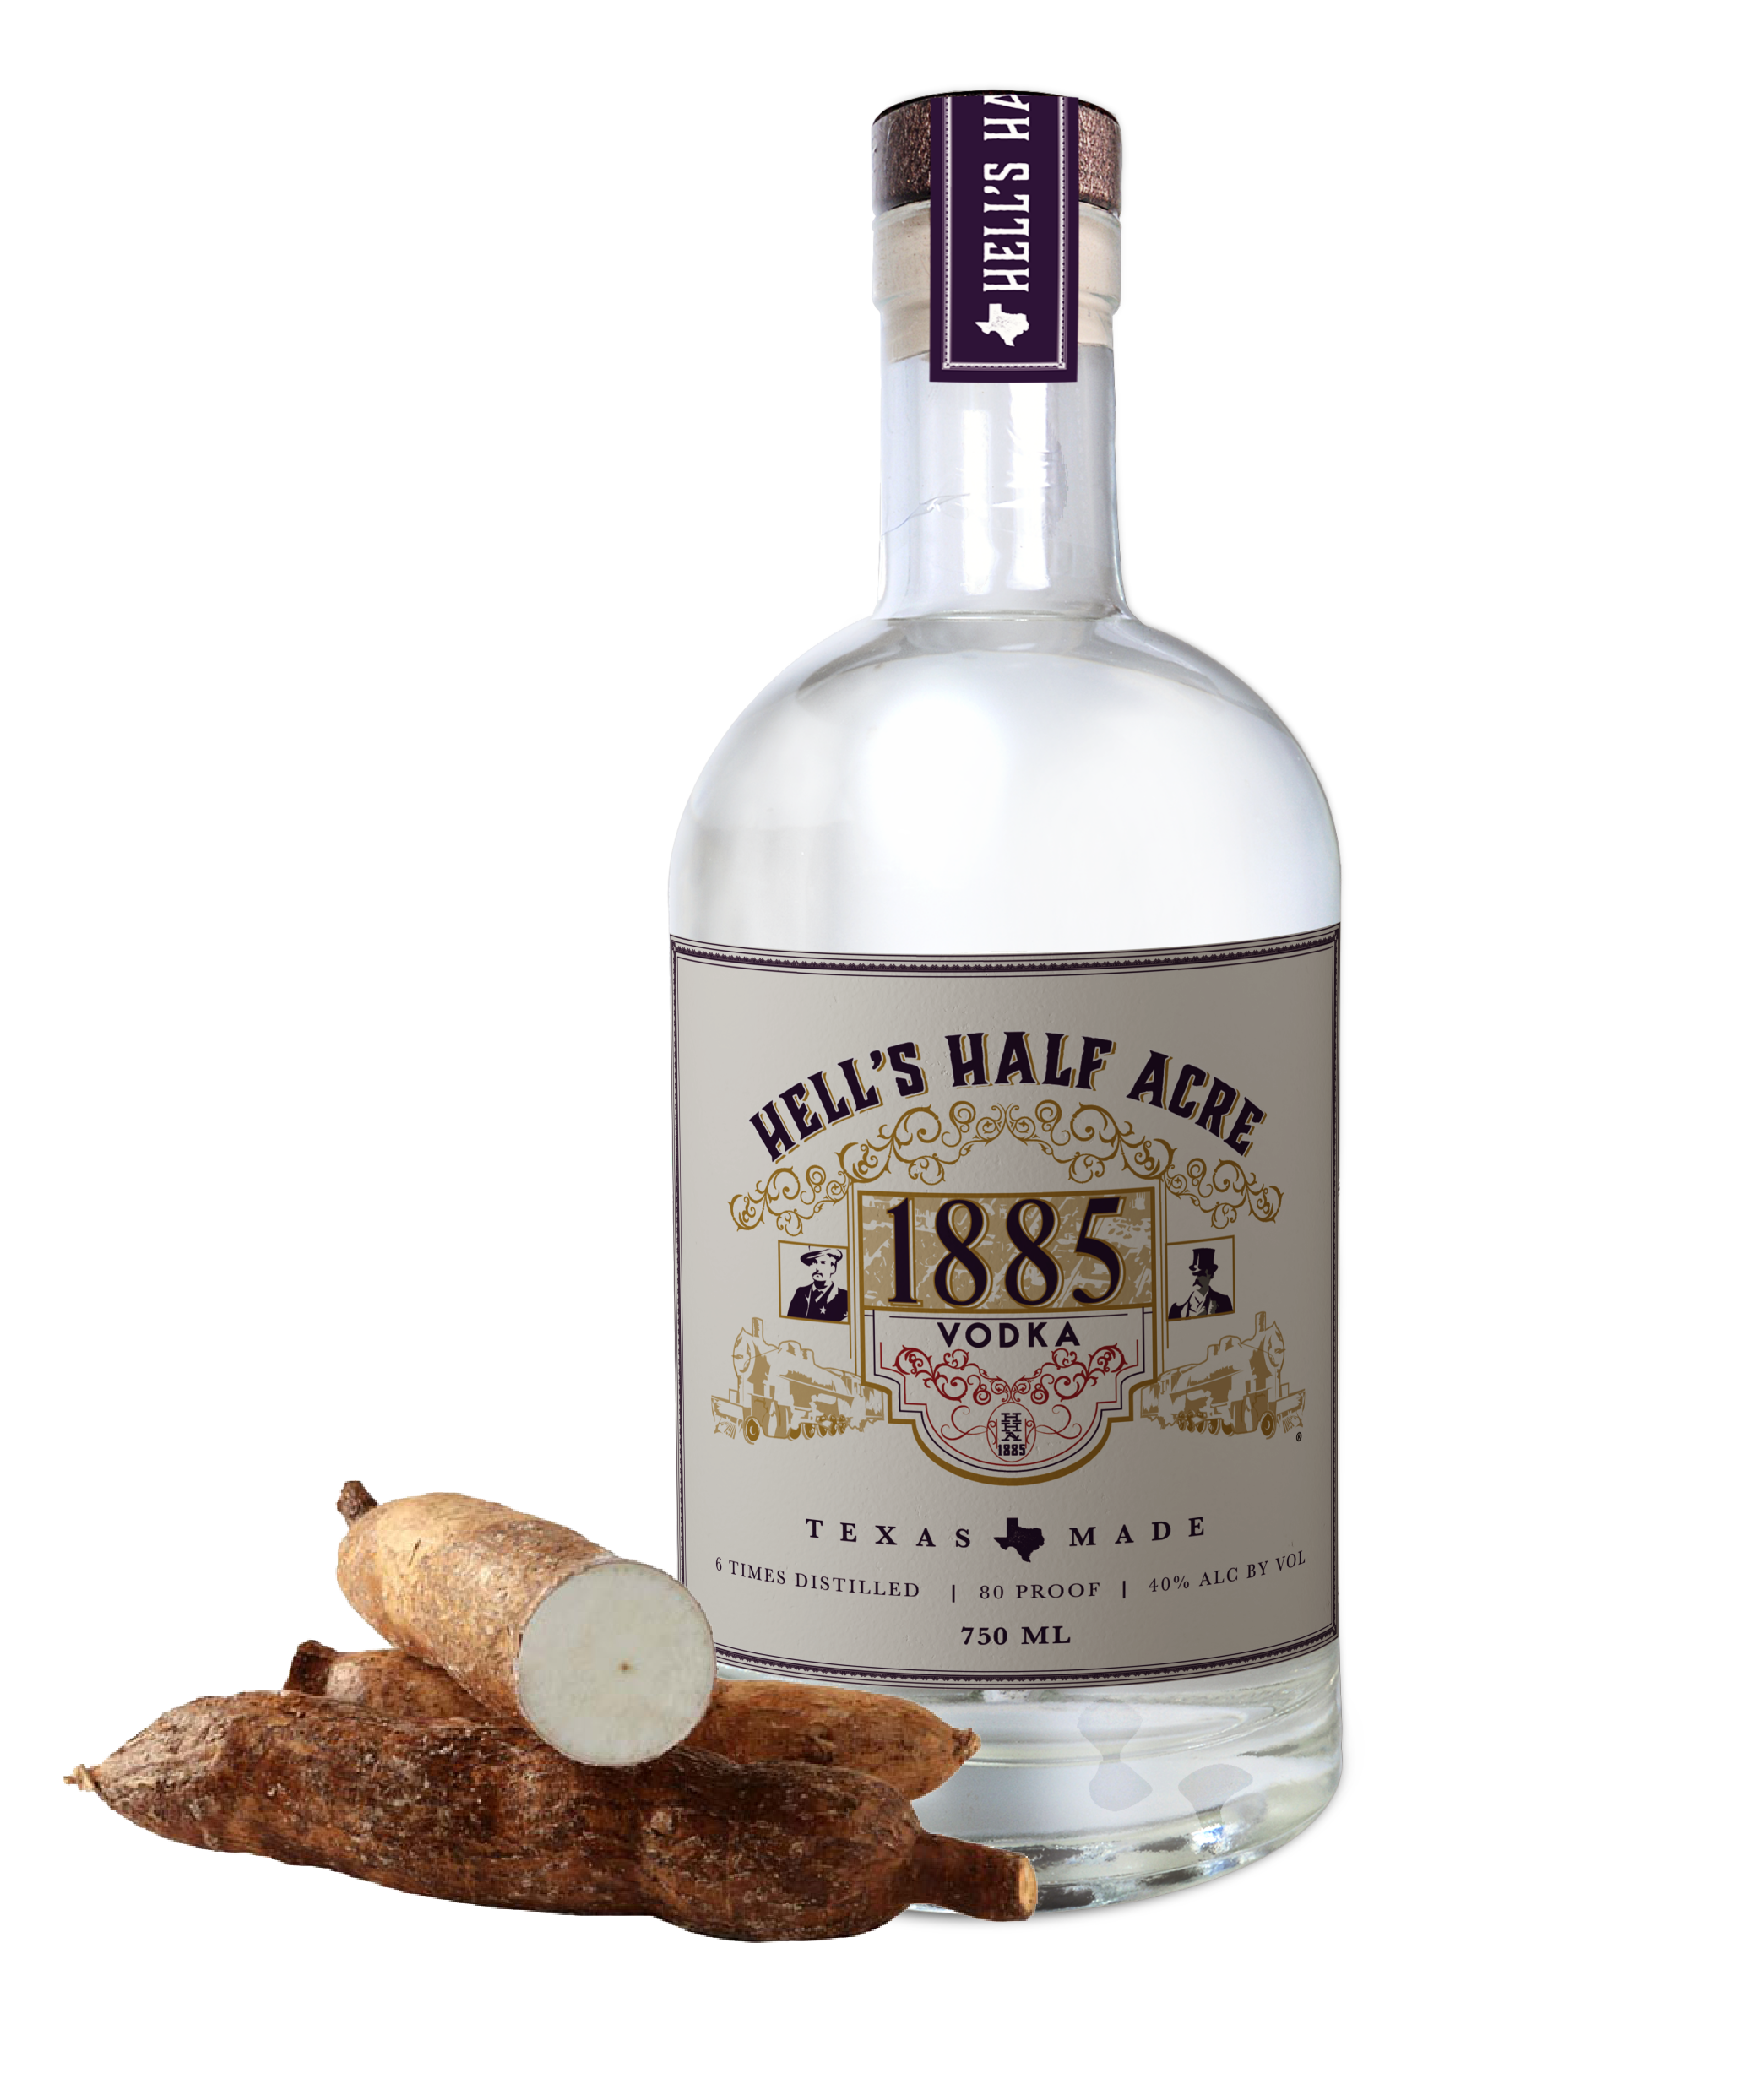 Hells Half Acre vodka